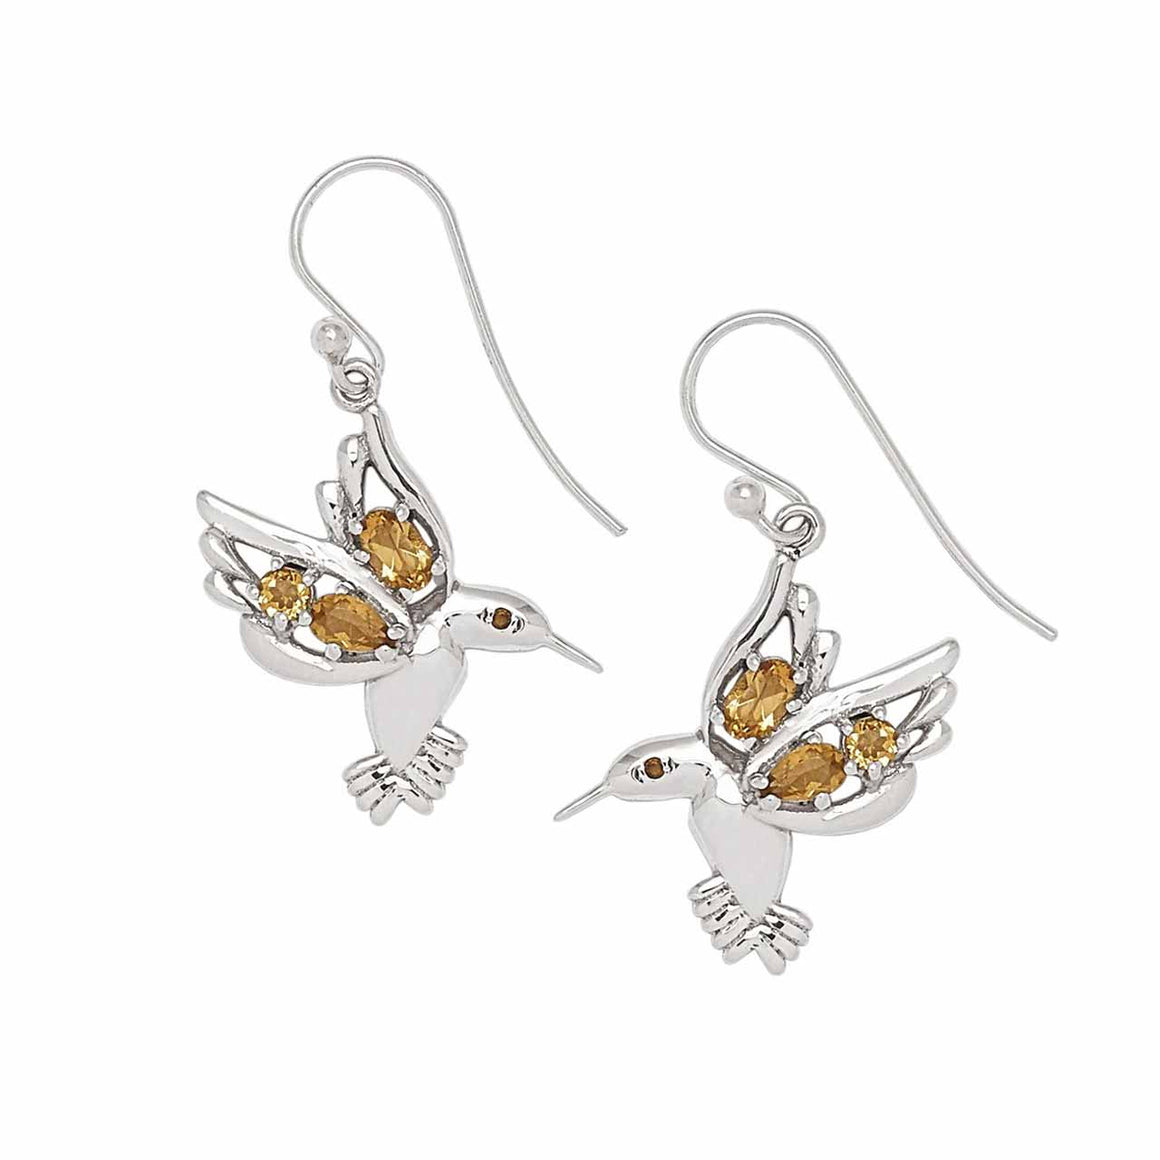 Hummingbird Citrine Gemstone Earrings